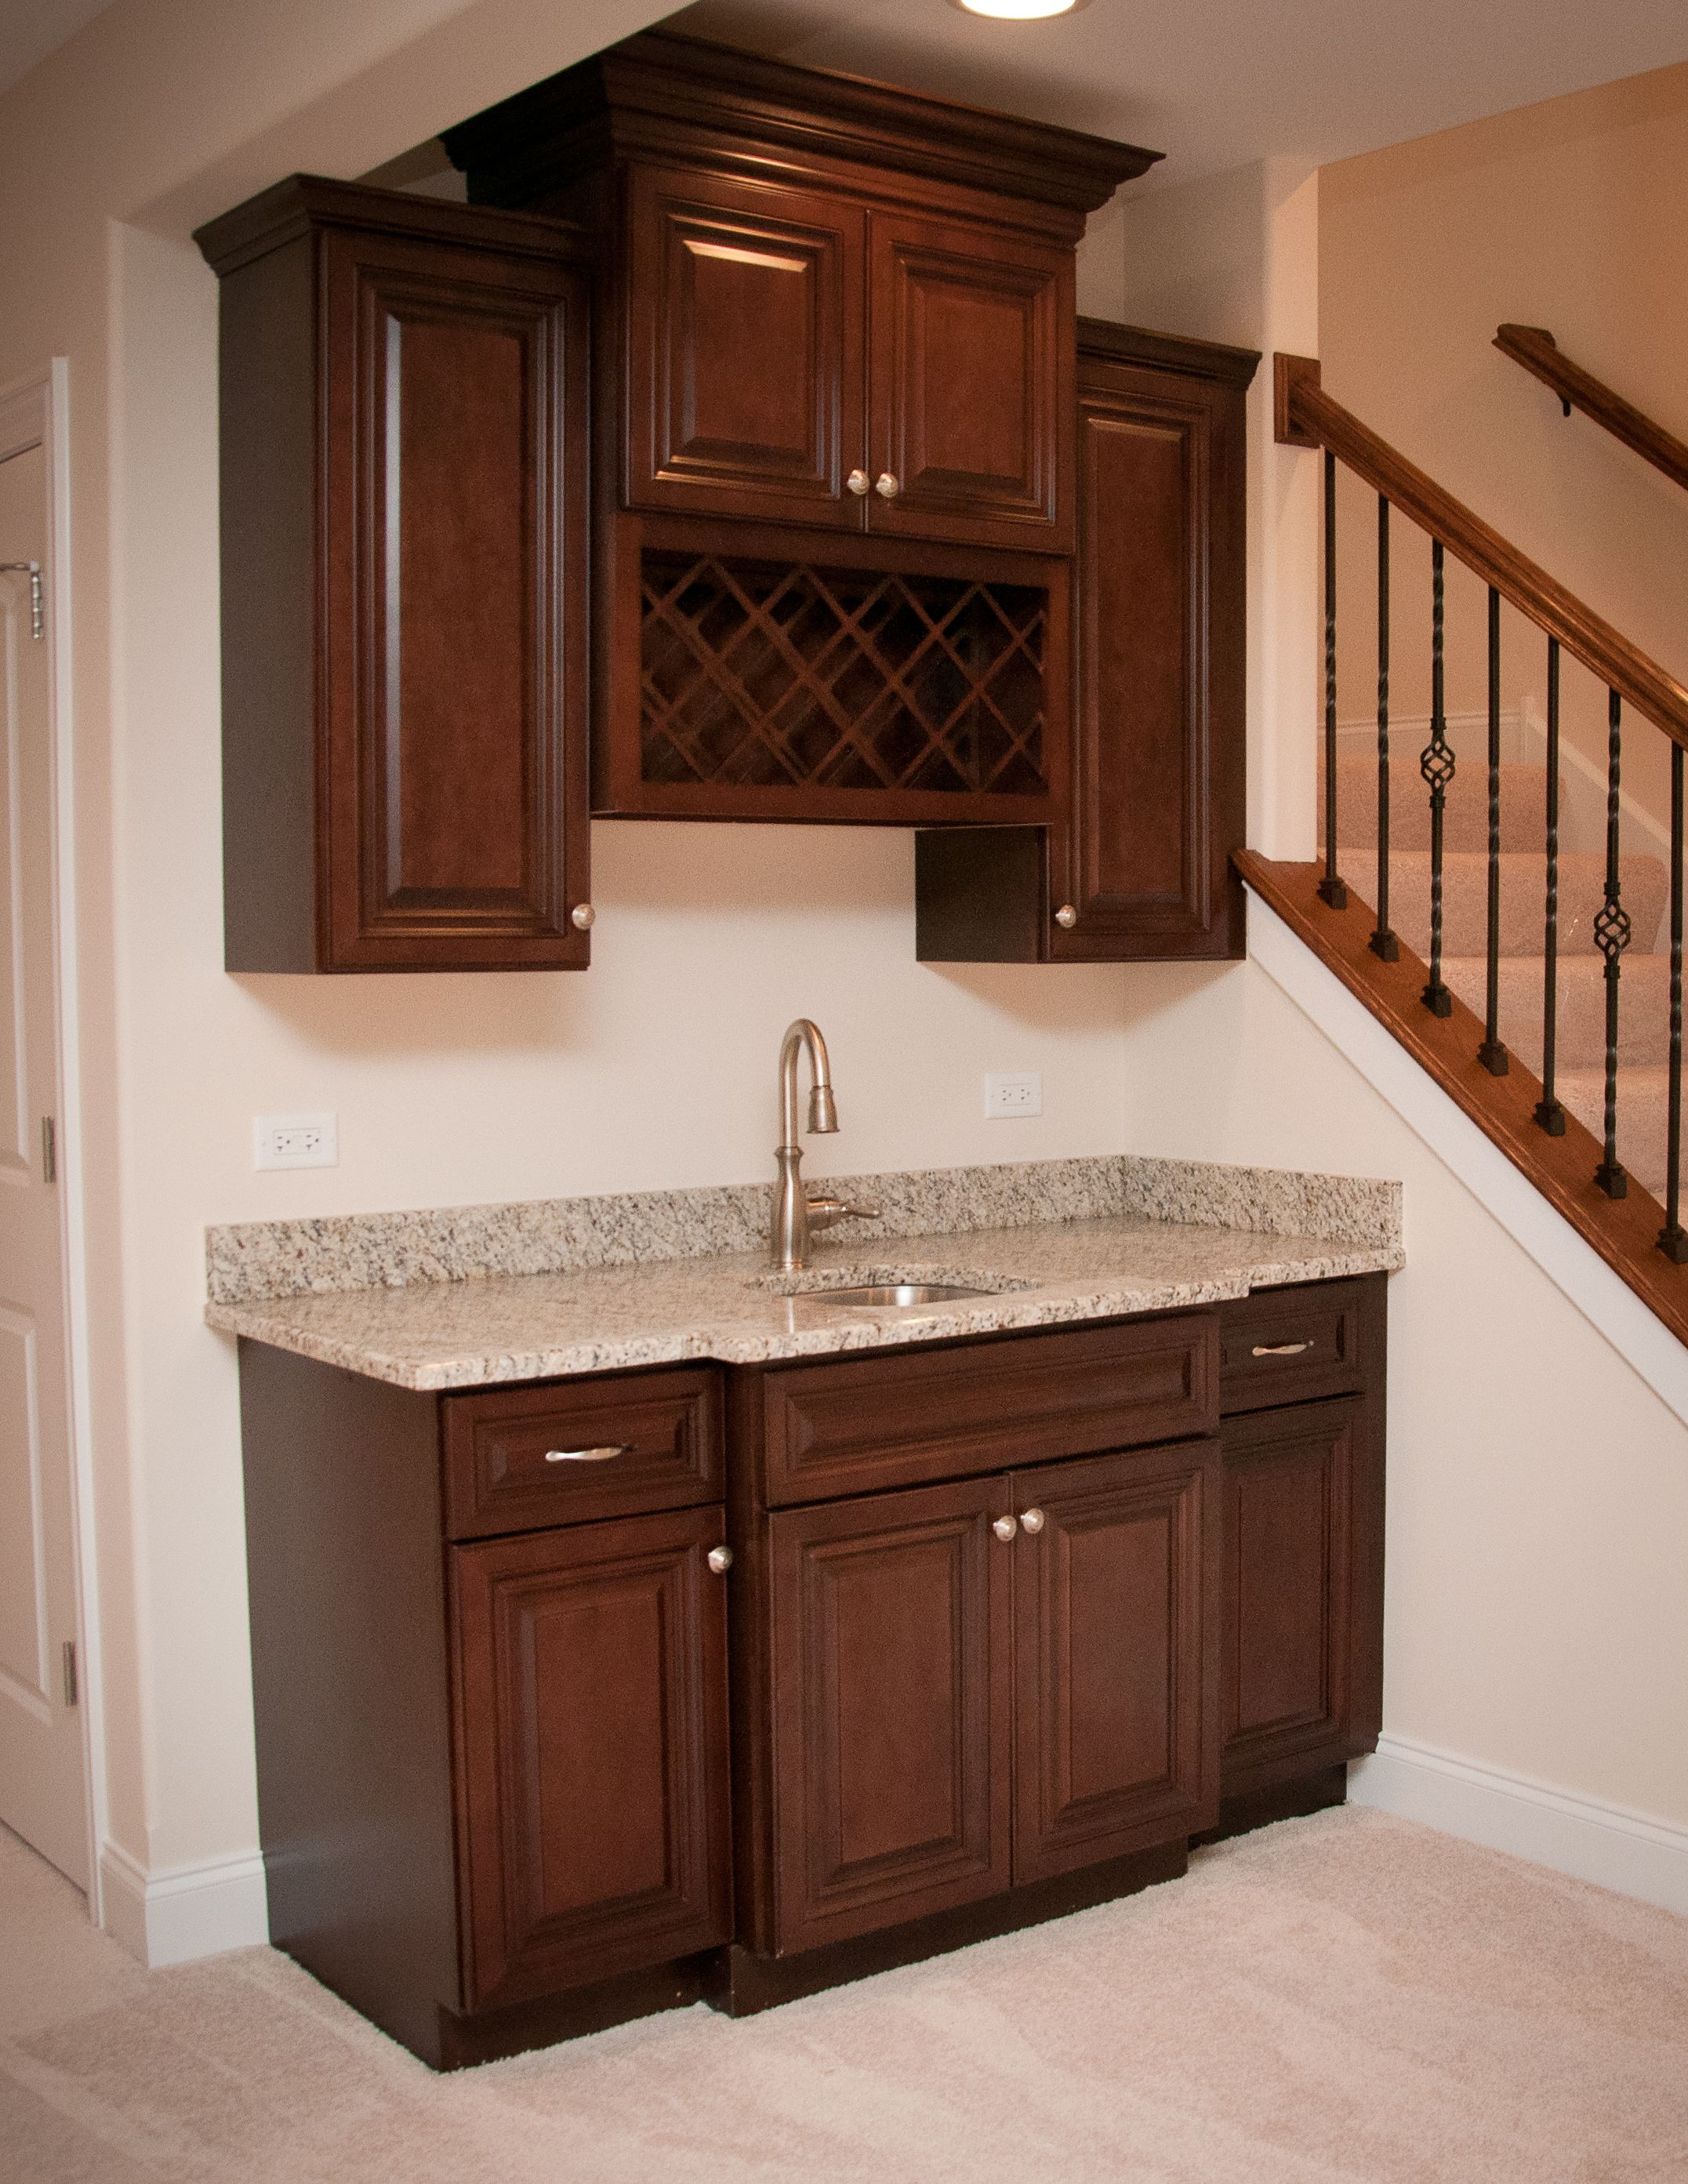 Kensington Kitchen Cabinets: Choice Cabinet Kensington Door Style. Wine Bar Storage